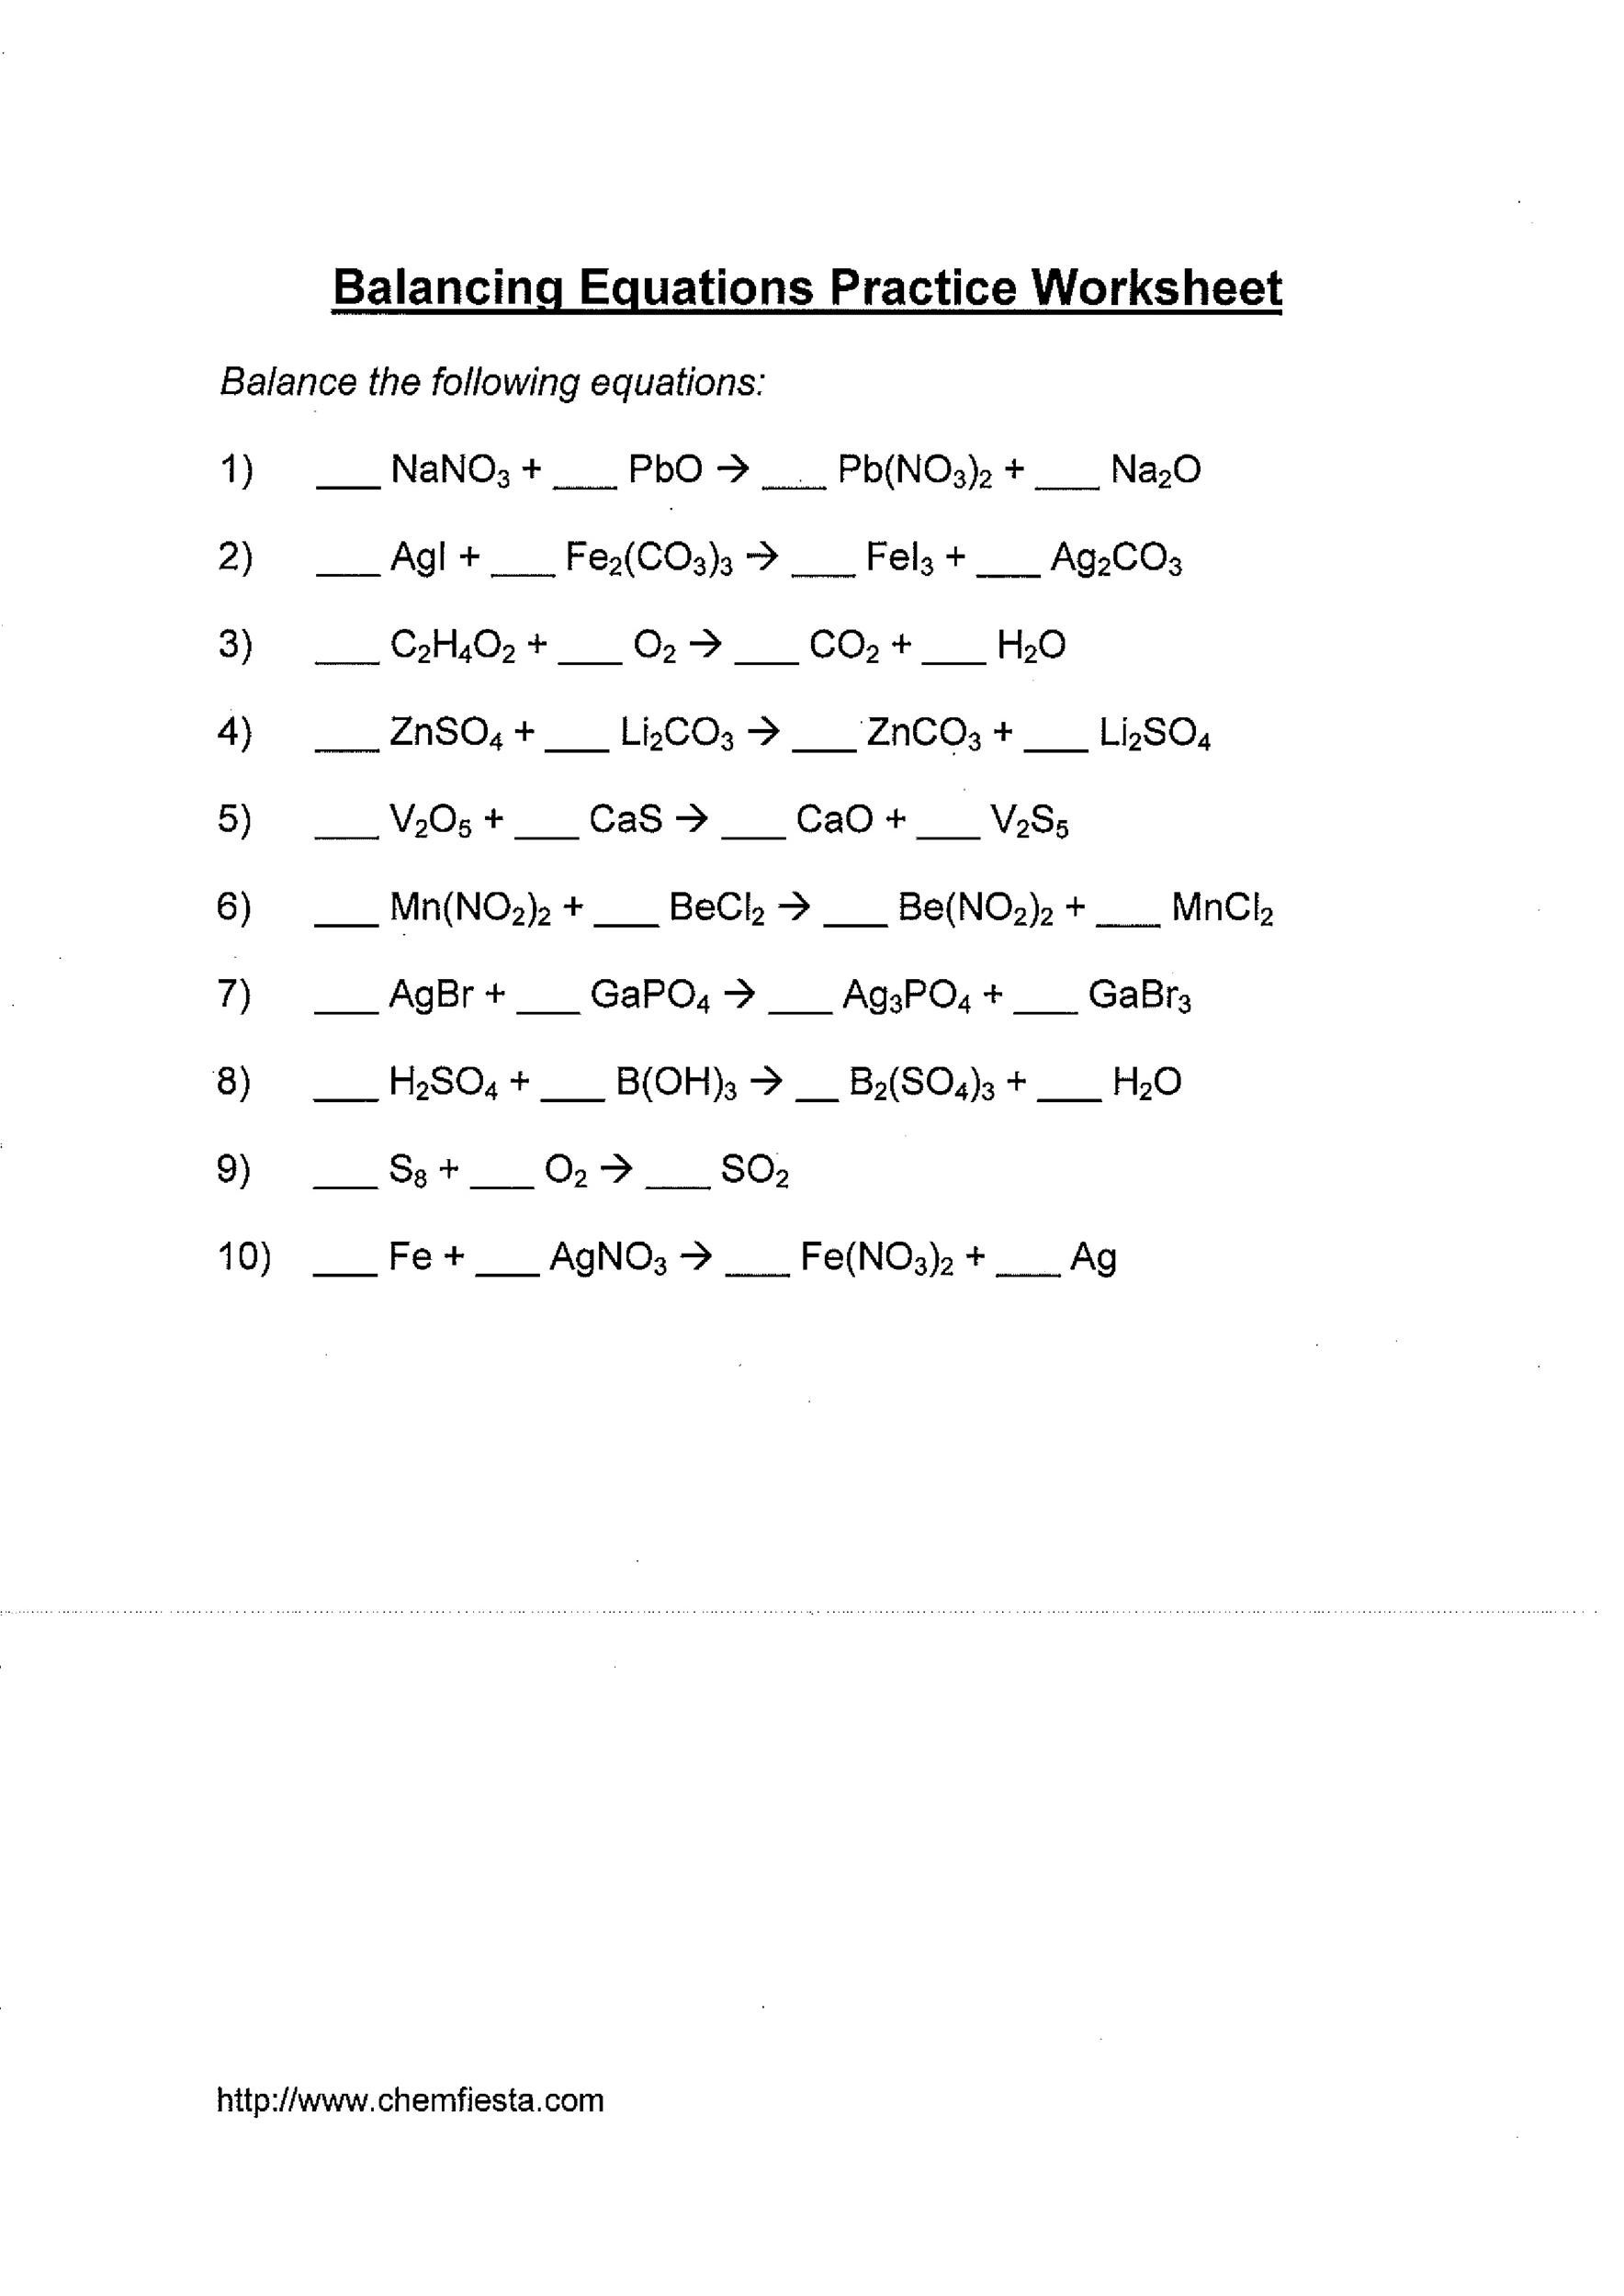 49 Balancing Chemical Equations Worksheets With Answers. Free Balancing Equations 19. Worksheet. Balancing Equations Worksheet At Mspartners.co